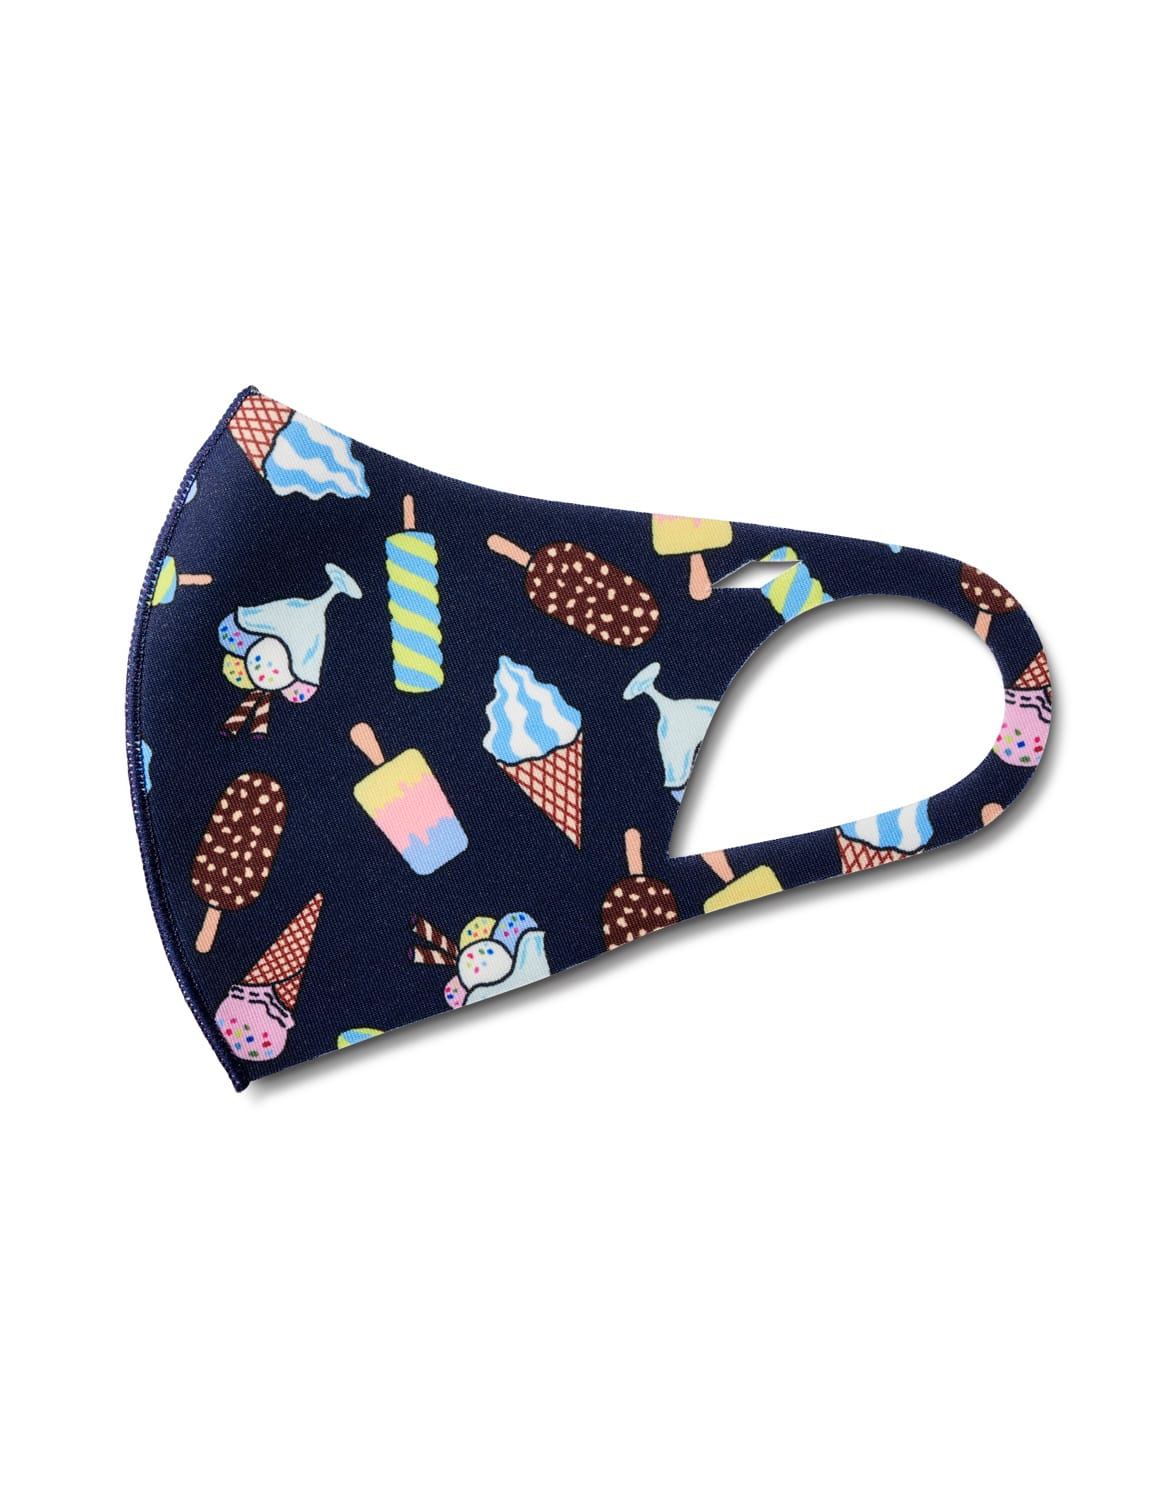 Ice Cream Parlor Anti-Bacterial Fashion Face Mask - Multi - Detail